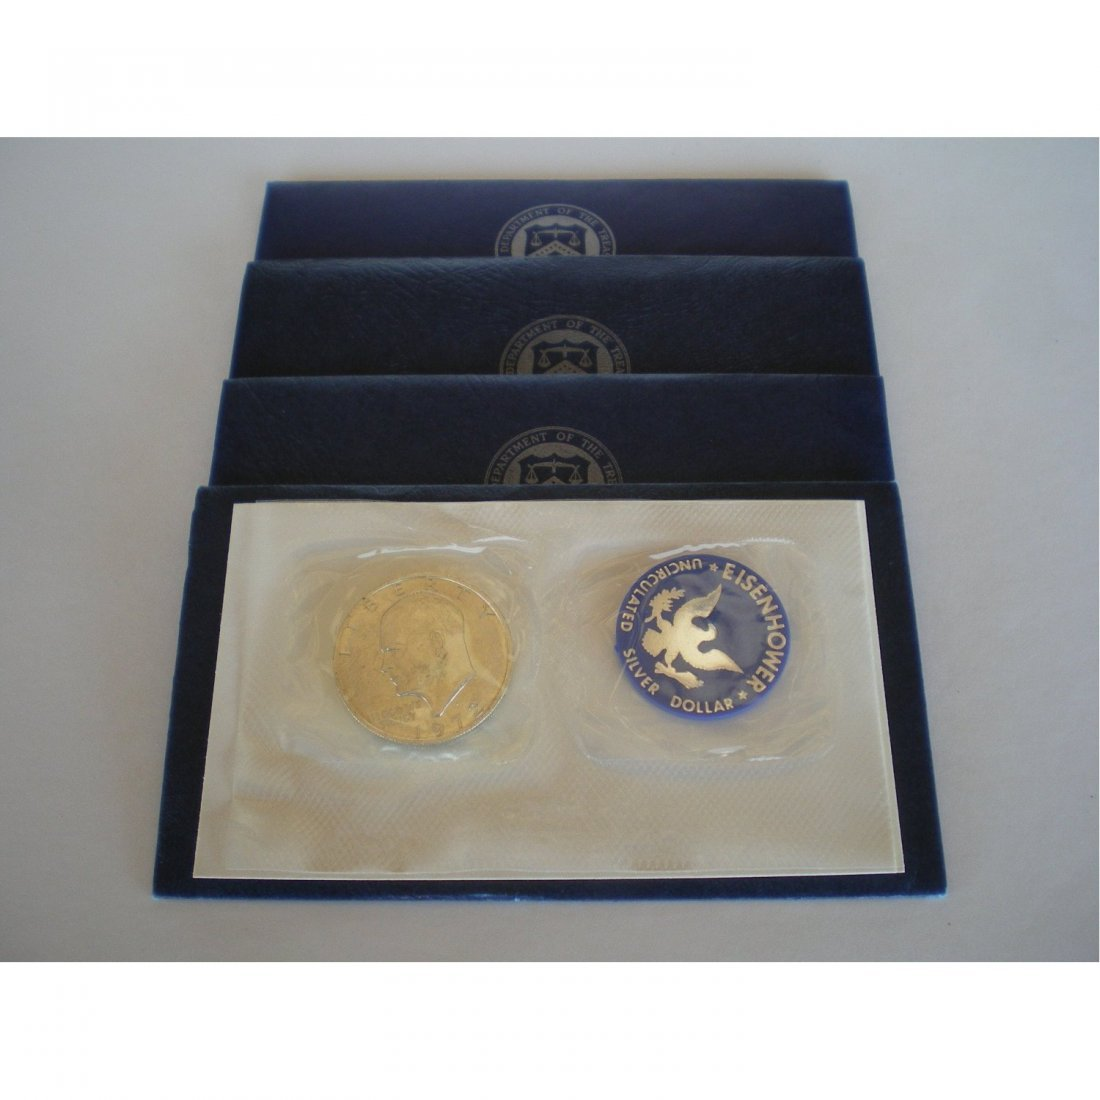 3A: Eisenhower Uncirculated Silver Dollar - Blue Pack